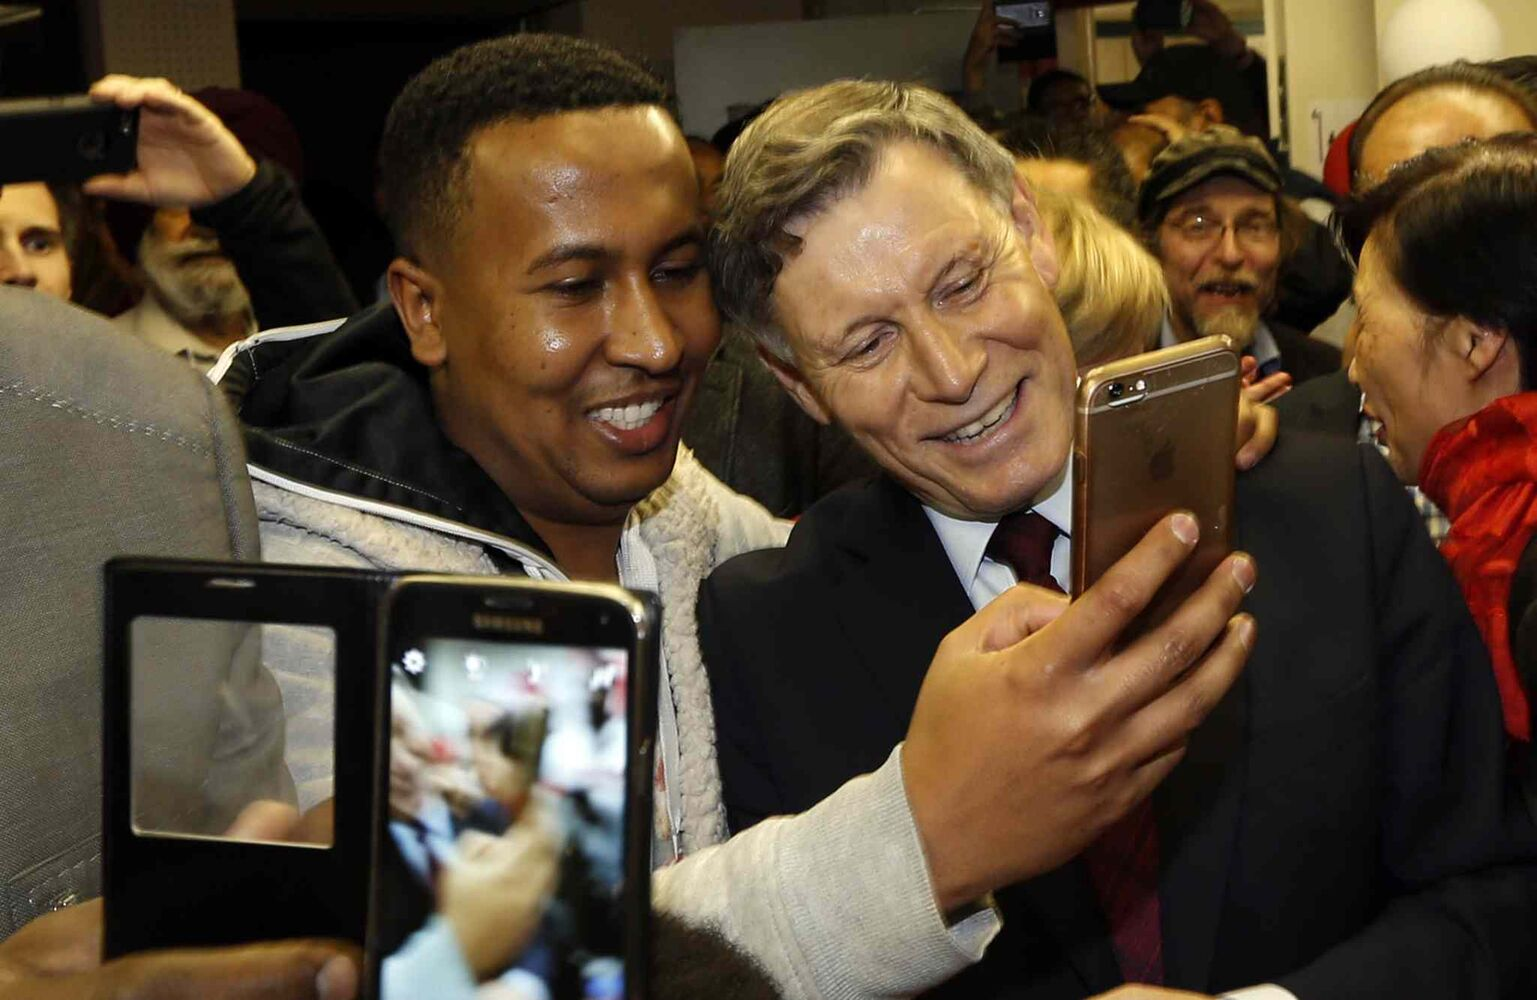 At right, Liberal candidate Terry Duguid poses for a picture with supporters at his Winnipeg South HQ after he was elected Monday night. (Wayne Glowacki / Winnipeg Free Press)